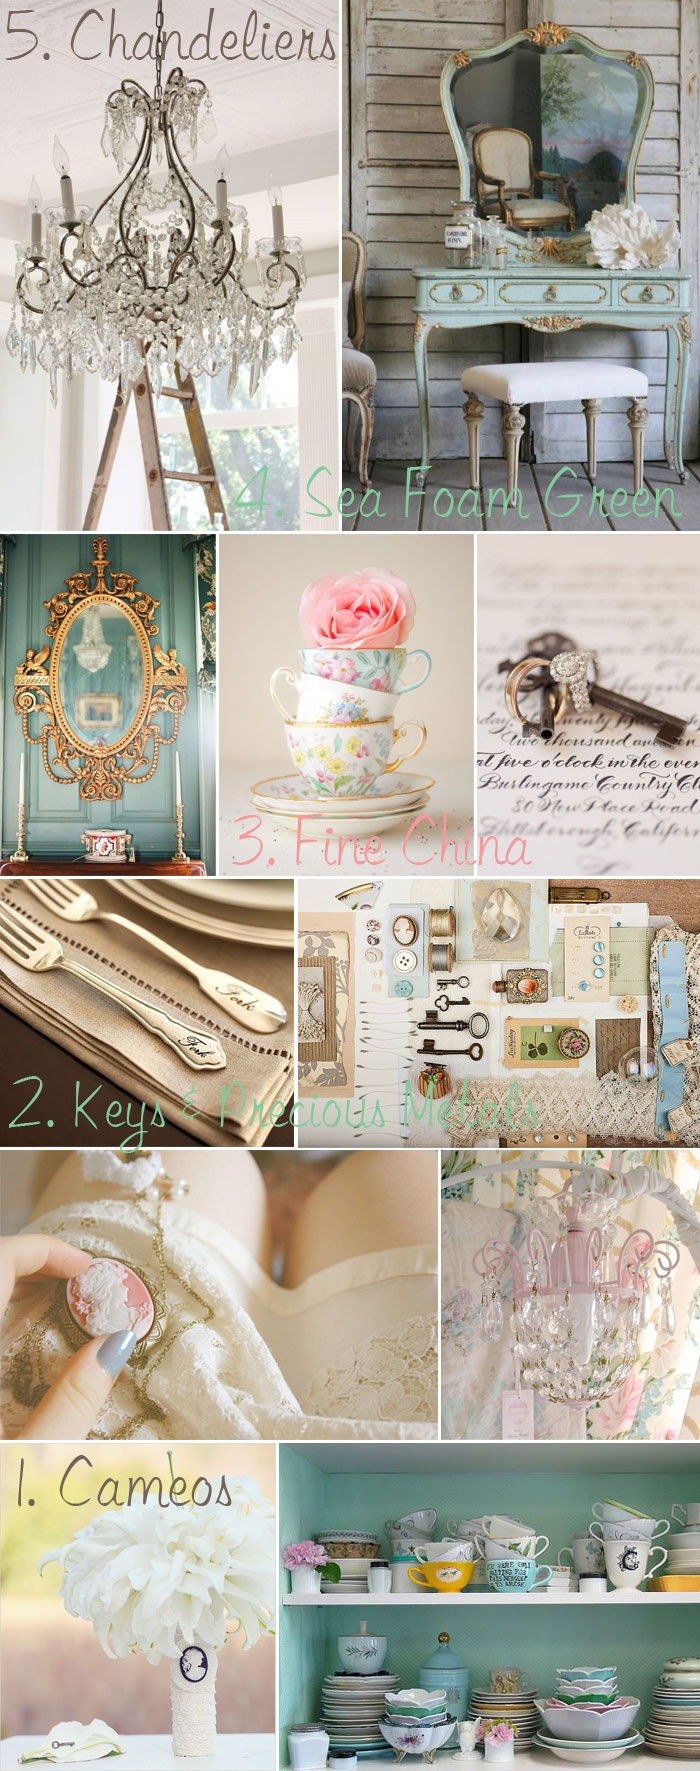 Trends In Wedding Paper Fashion And Decor From The Victorian Era Love Look Of A Vintage